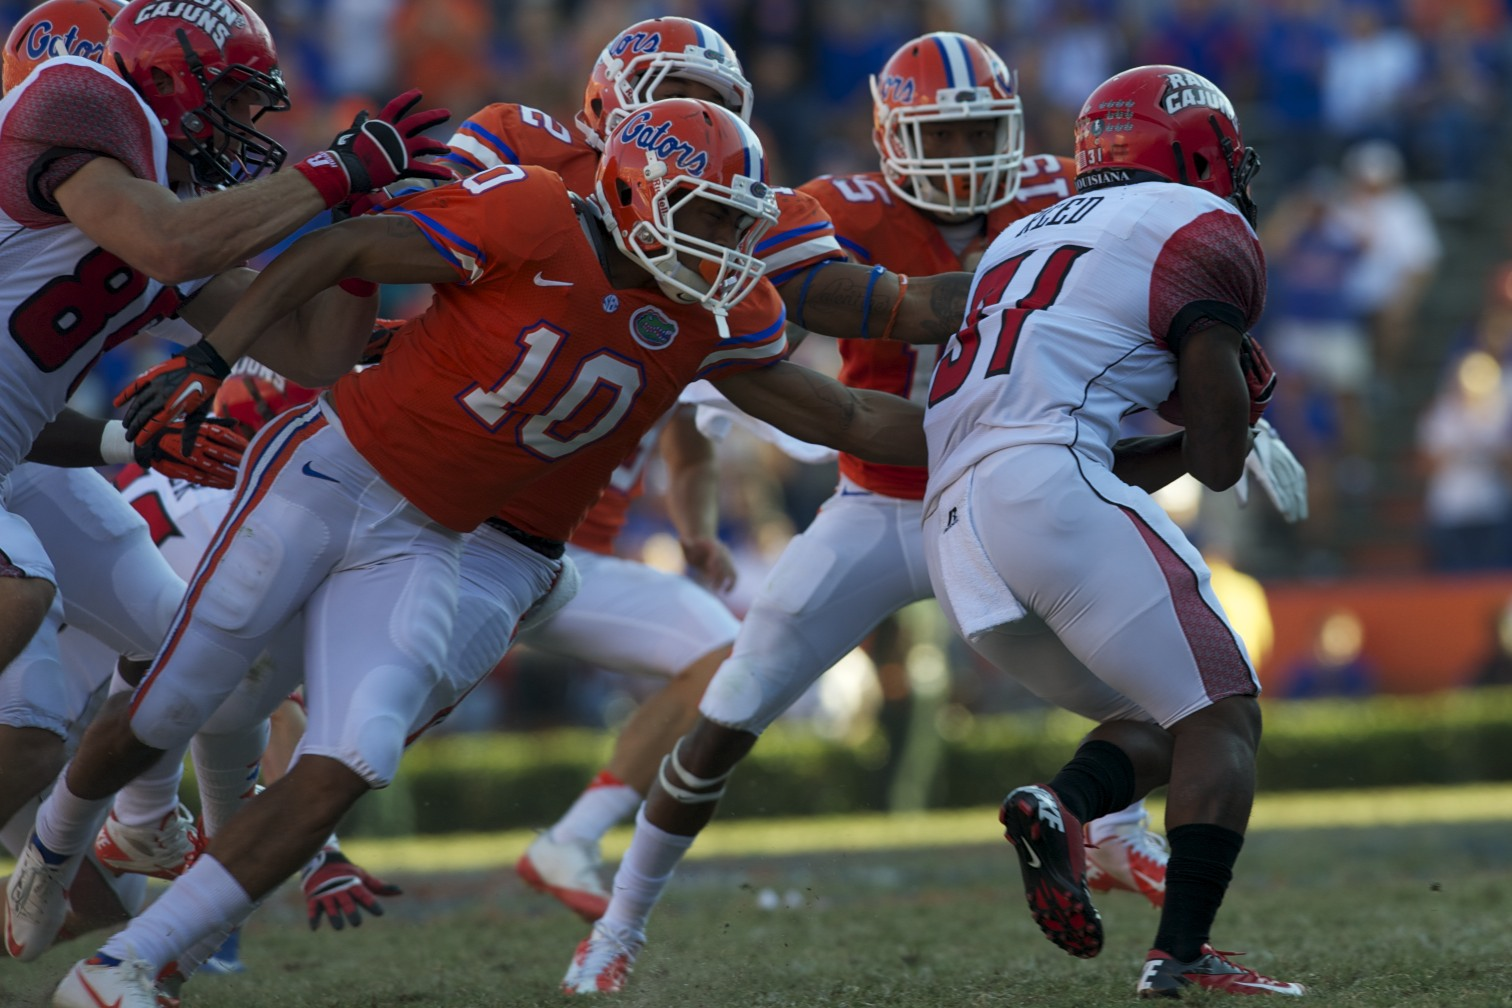 Florida defense takes down ball carrier Effrem Reed (31) in the fourth quarter of Saturday's game to prevent a Lousisiana first down.